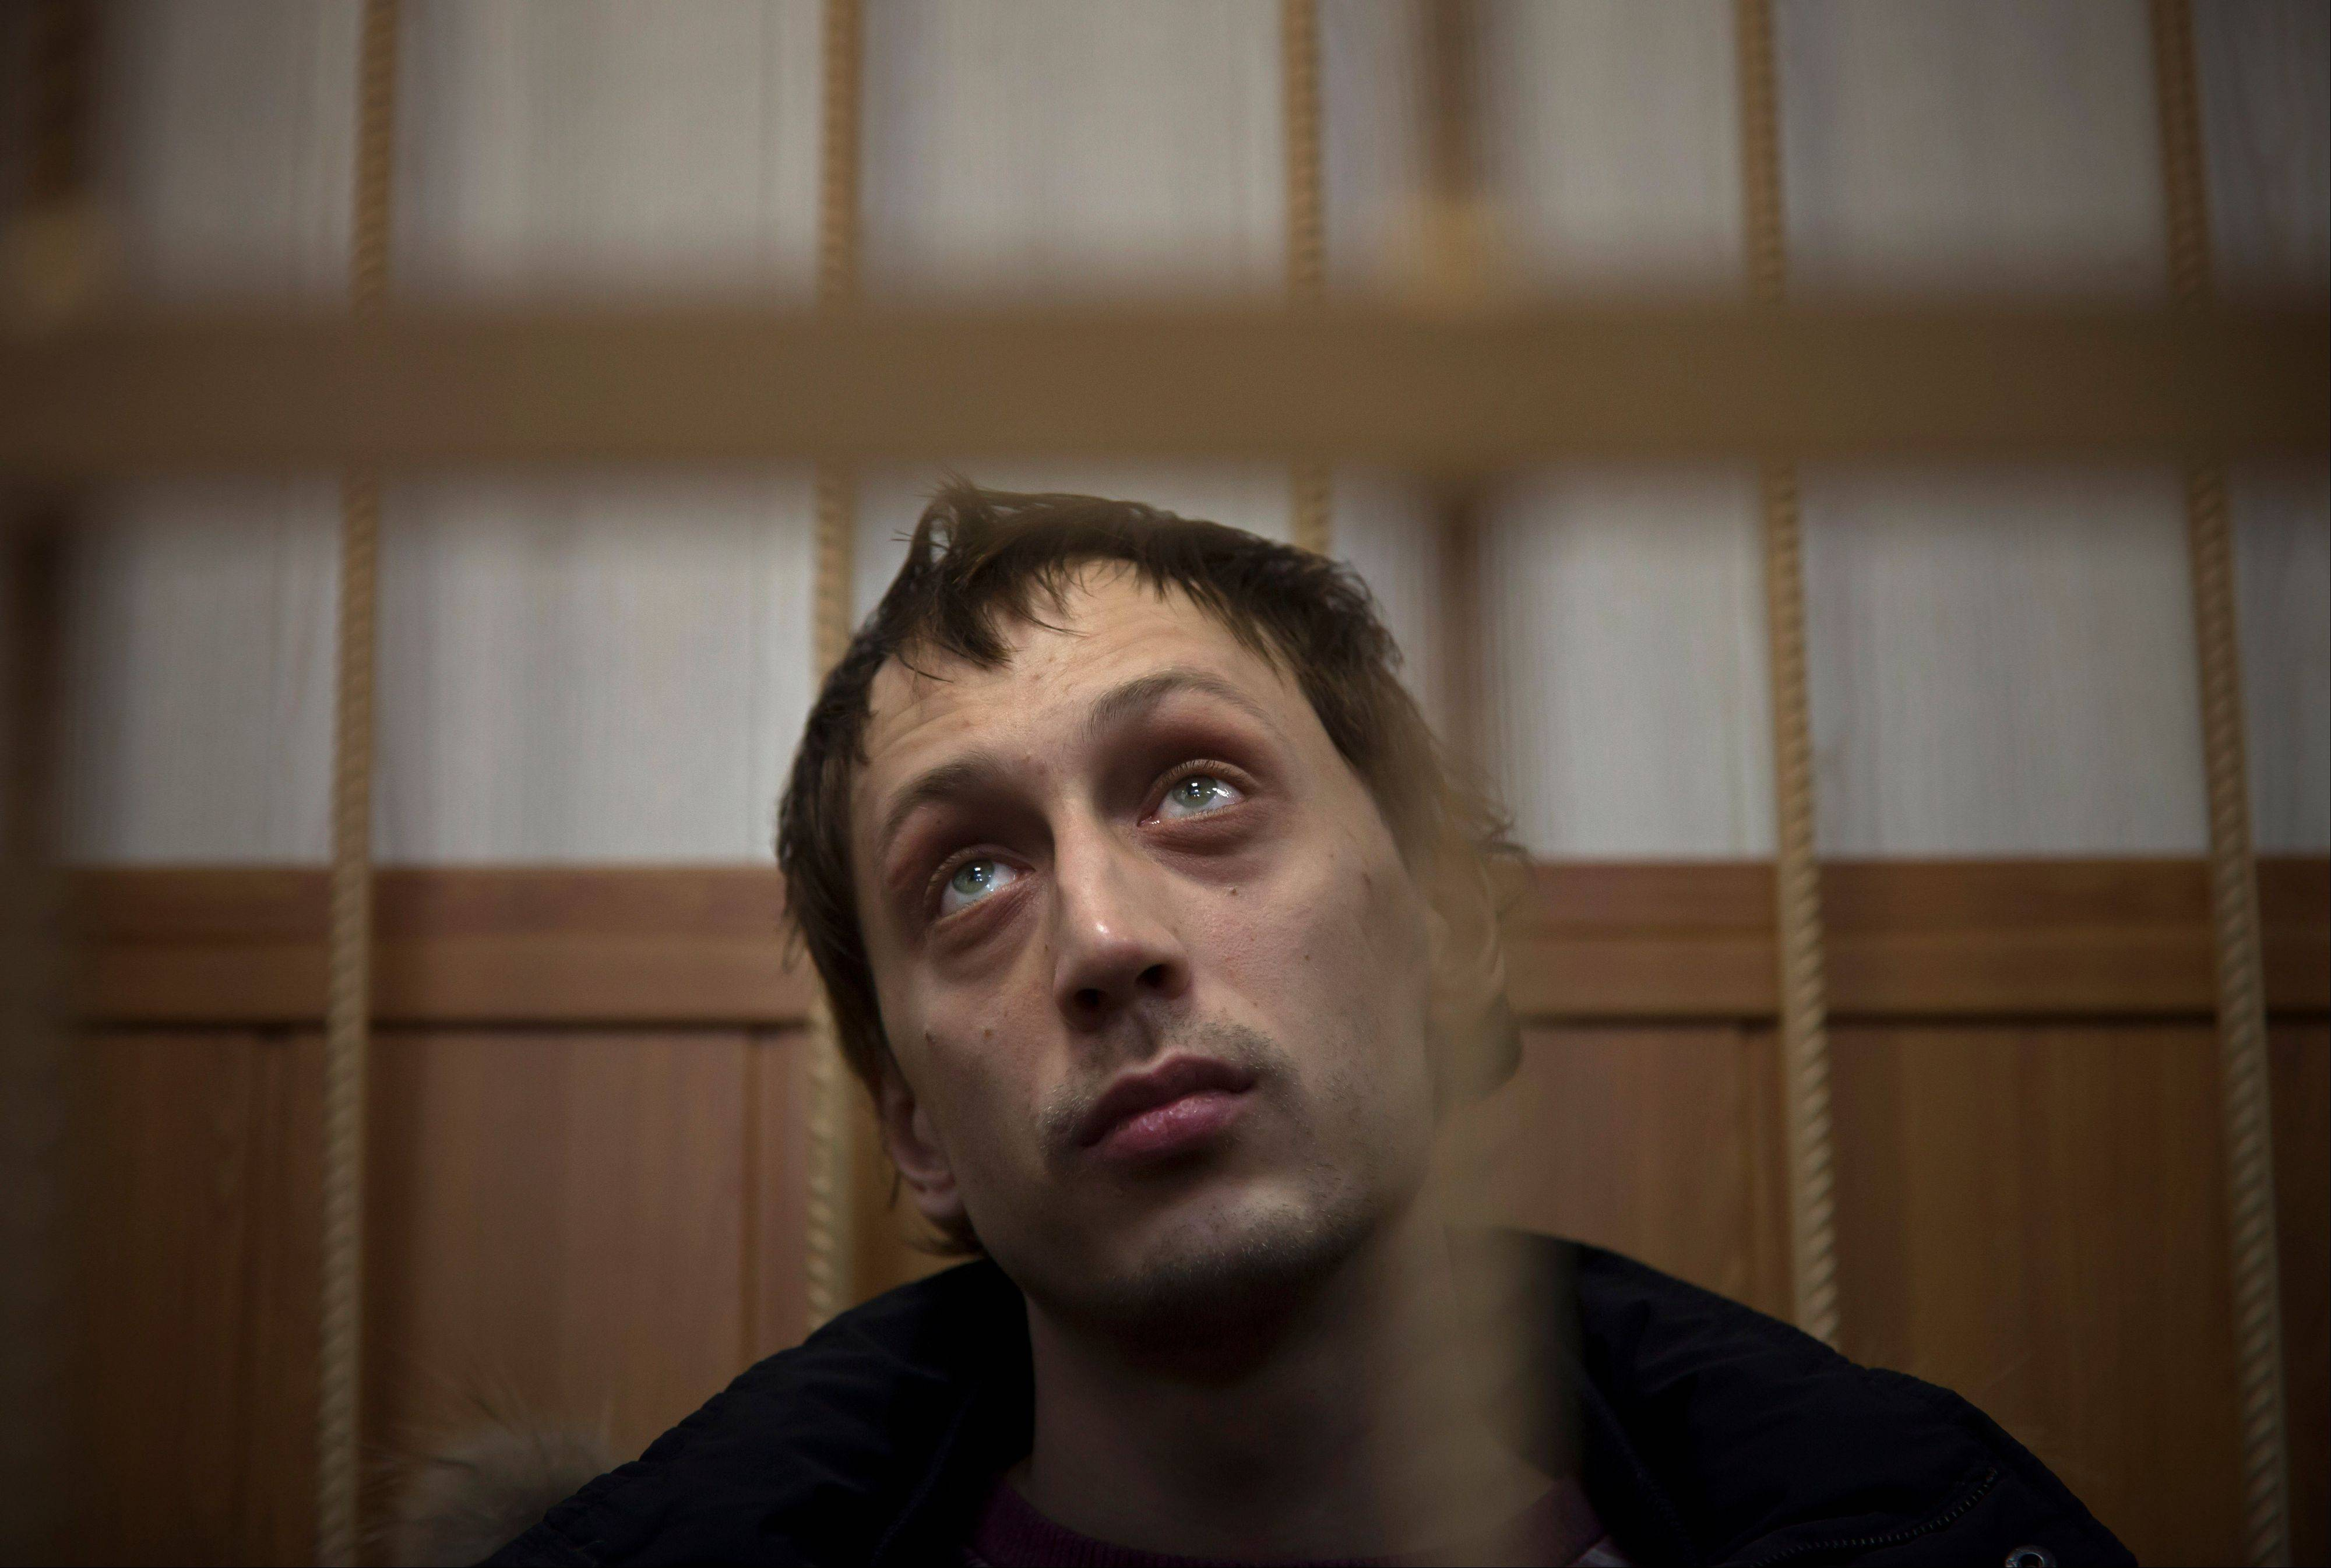 "Bolshoi soloist Pavel Dmitrichenko listens in a courtroom in Moscow, Russia, Thursday, March 7, 2013. The star dancer accused of masterminding the attack on the Bolshoi ballet chief acknowledged Thursday that he gave the go-ahead for the attack, but said he did not order anyone to throw acid on the artistic director's face. Dmitrichenko told a Moscow court that he had complained about ballet chief Sergei Filin to an acquaintance, who offered to ""beat him up."""